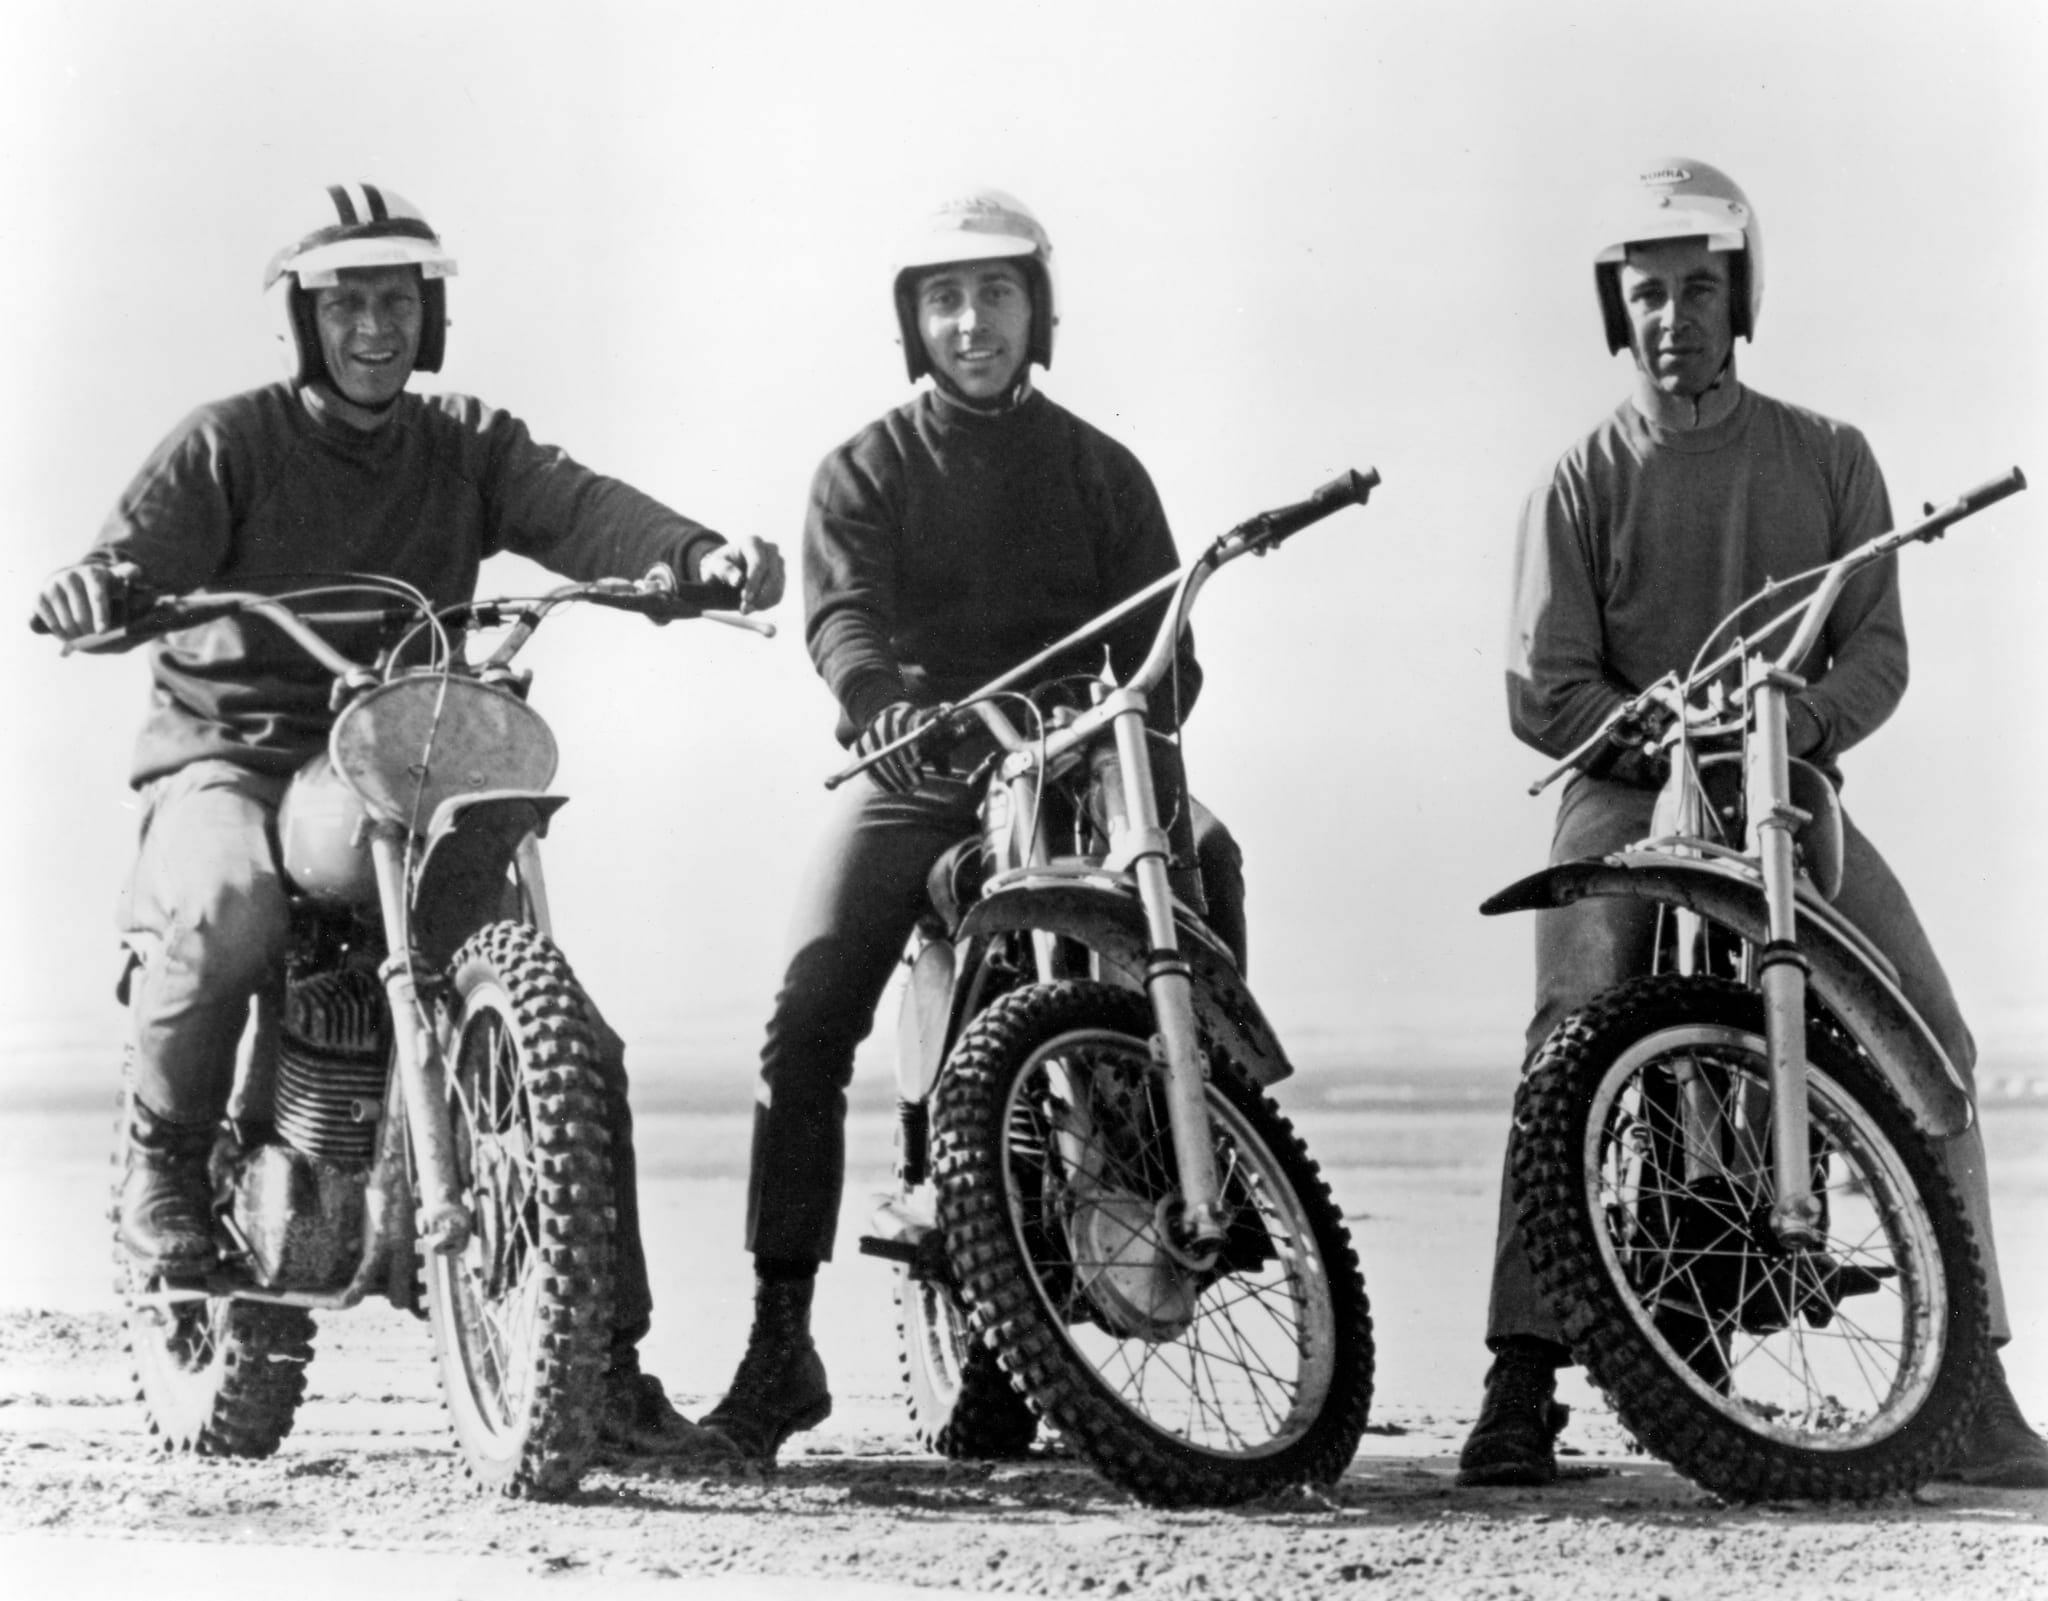 On Any Sunday: Mert, Malcolm and McQueen on the sand dunes